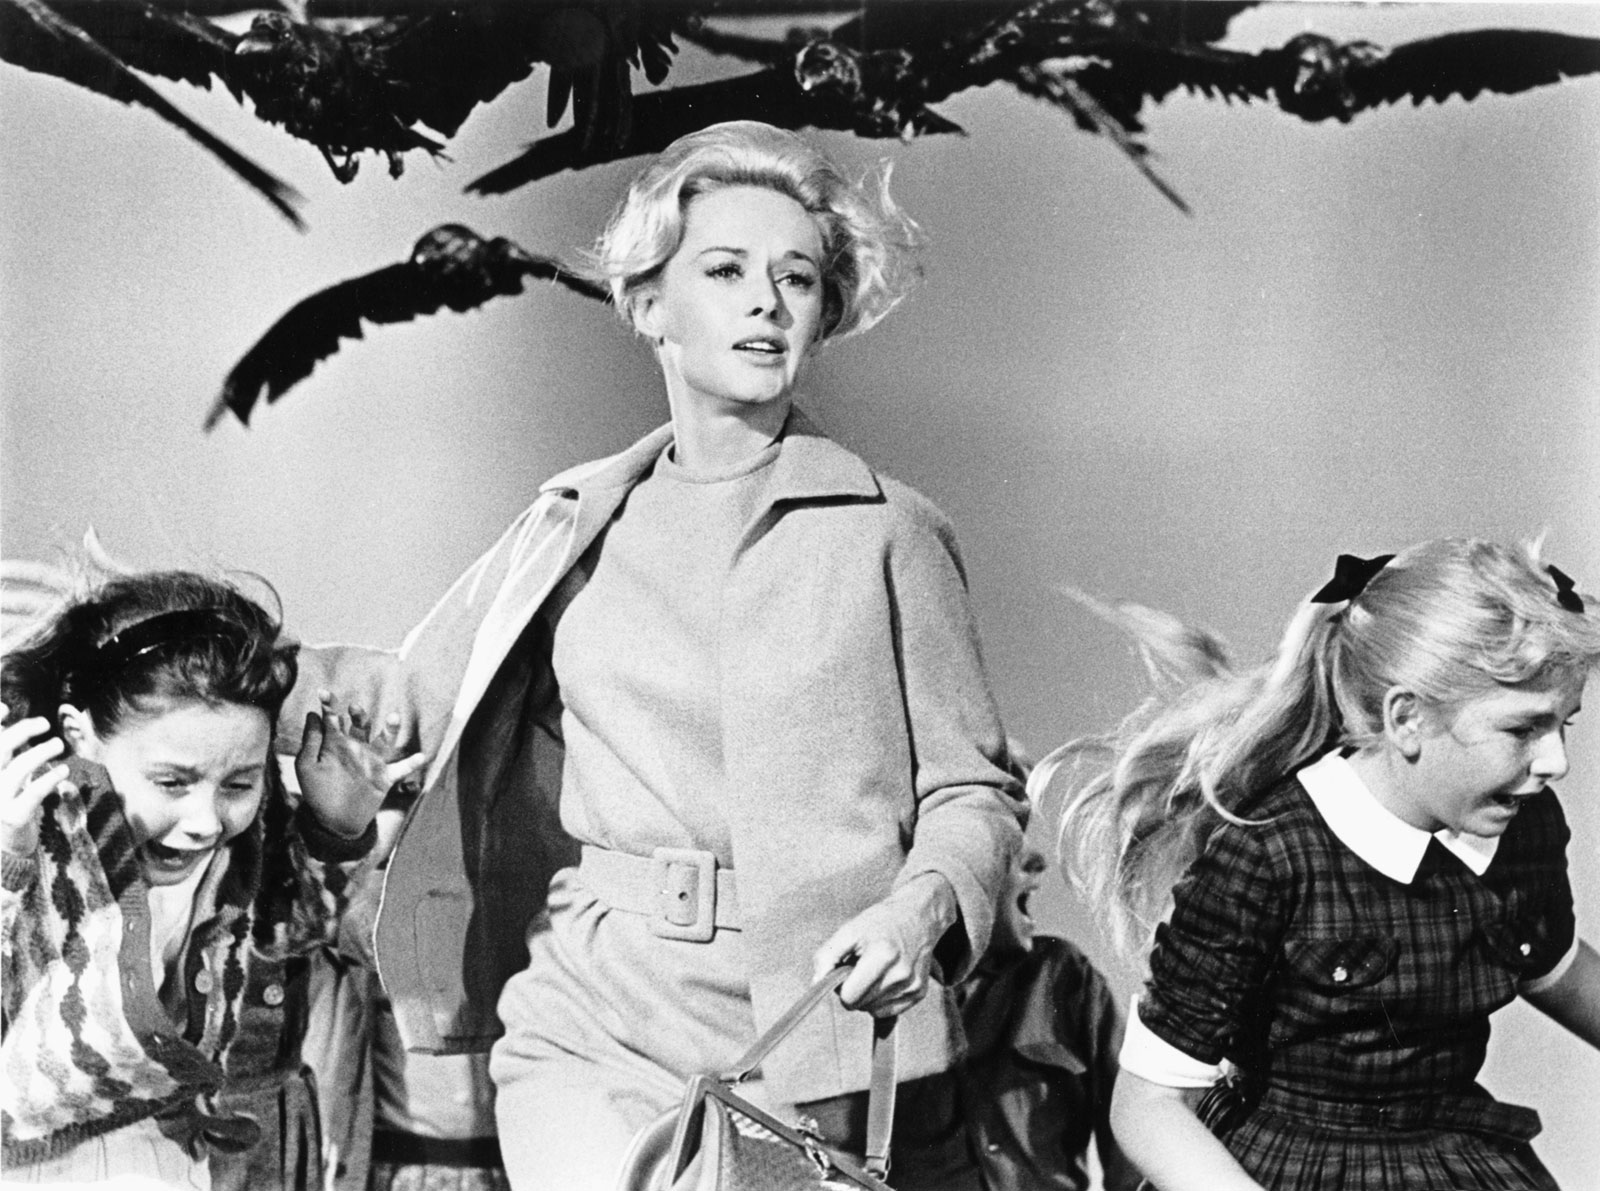 Tippi Hendren as Melanie Daniels helping children escape attack in Hitchcock's 'The Birds' – copyright Universal Pictures